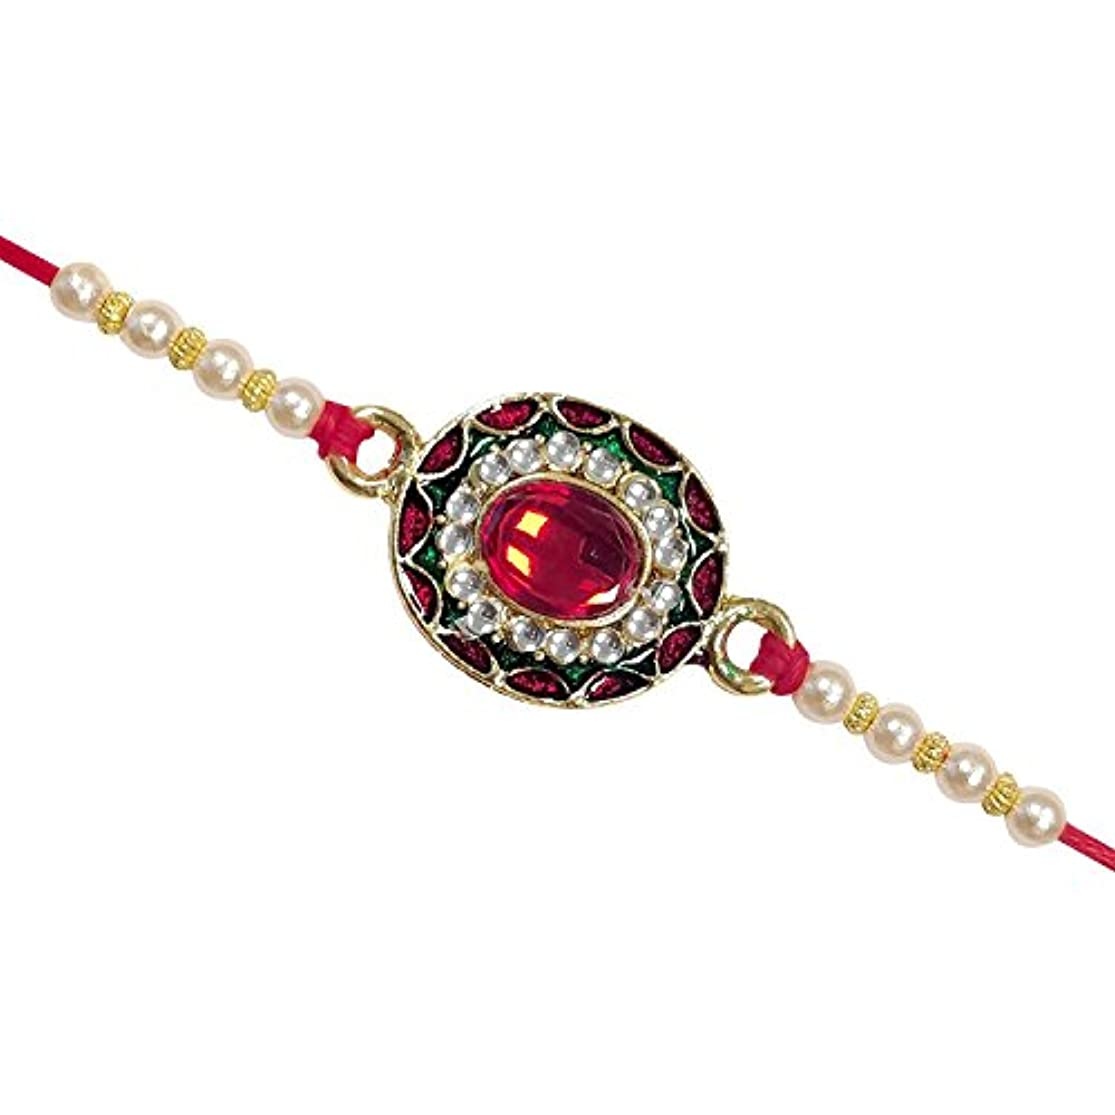 Rakhi for Your Brother Rakhee Thread On Raksha Bandhan Decorated with Pearl Enamel Design - Indian Festival Rakshabandhan Rakhi for Bhaiya ogcywdgf1